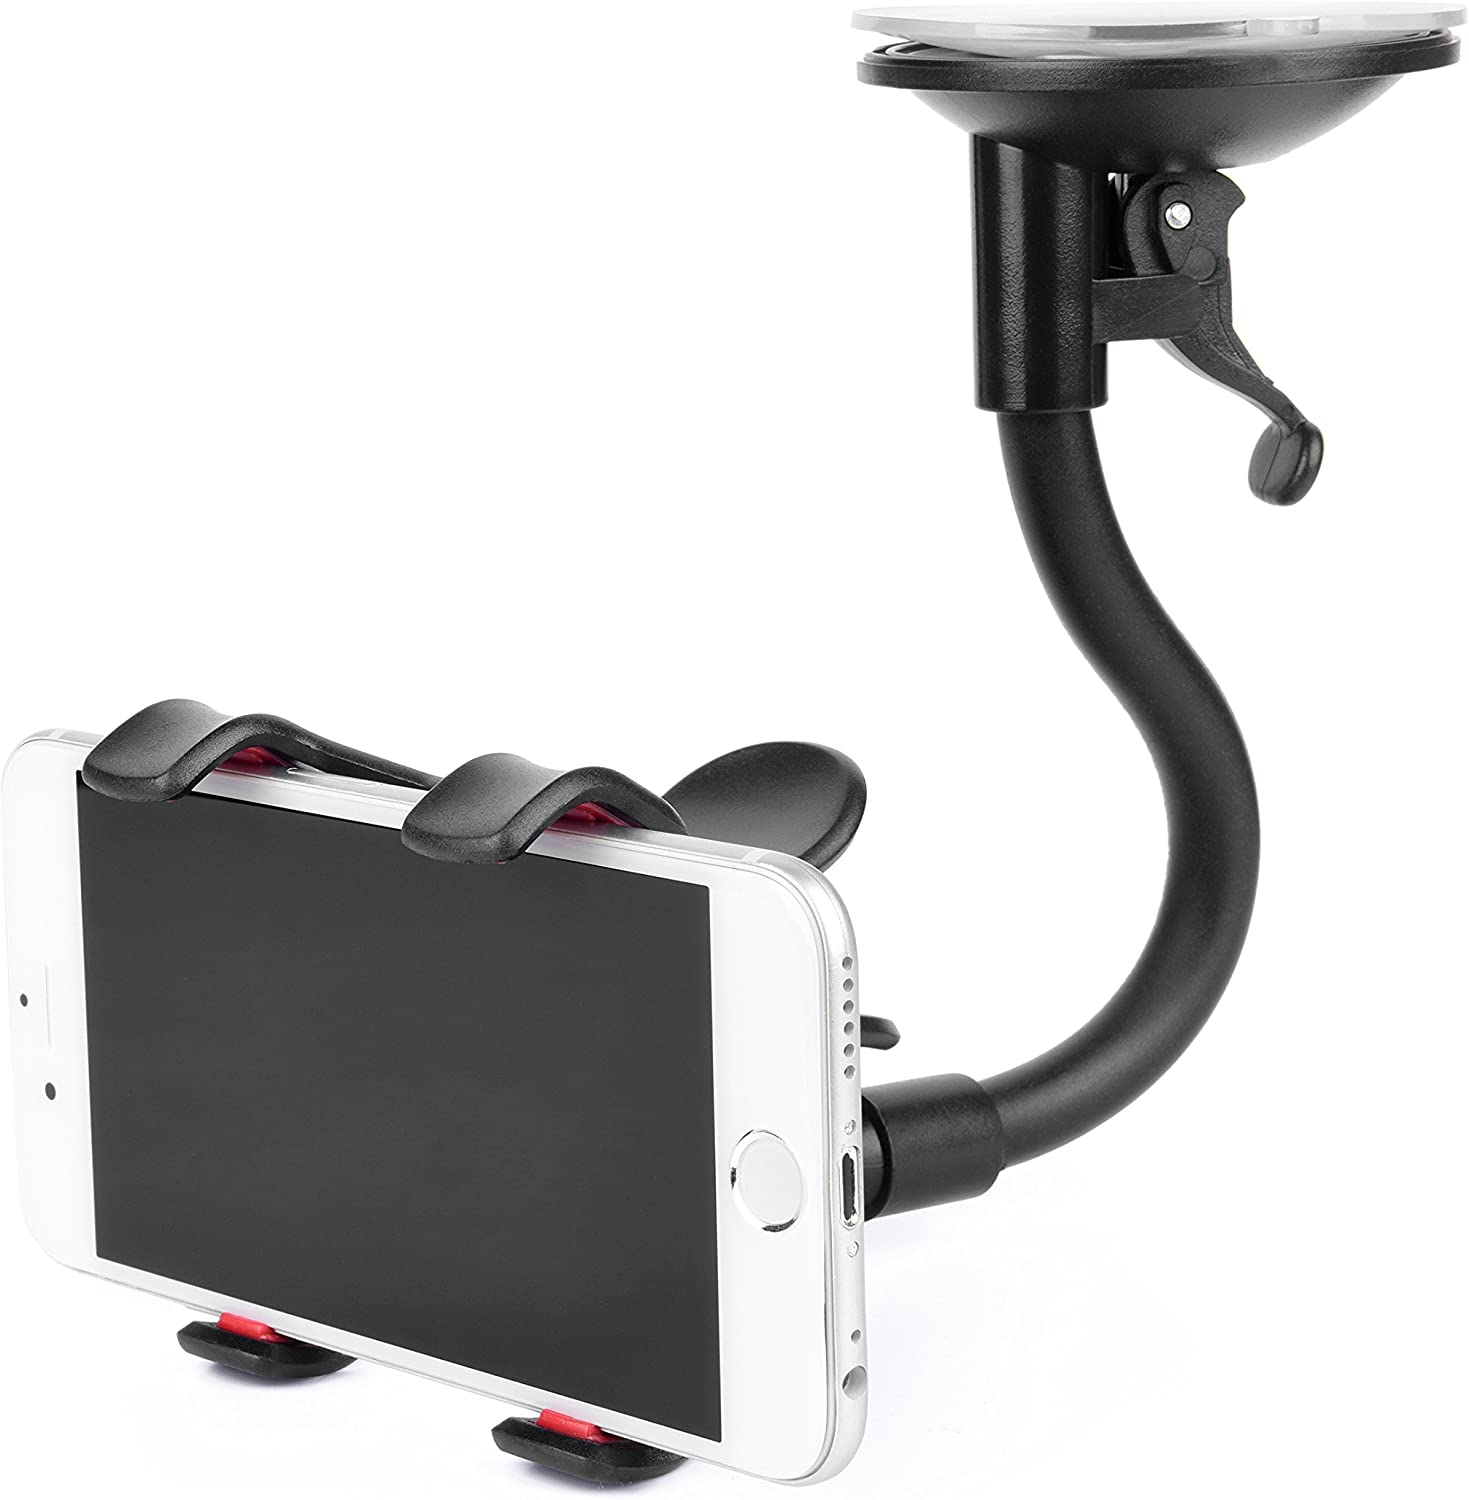 Google Huawei and More Air Vent and Windshield Long Arm Car Phone Mount with One Button Design Car Holder for iPhone X//8//7//7P//6s//6P//5S Galaxy S5//S6//S7//S8 LG Cell Phone Holder for Car